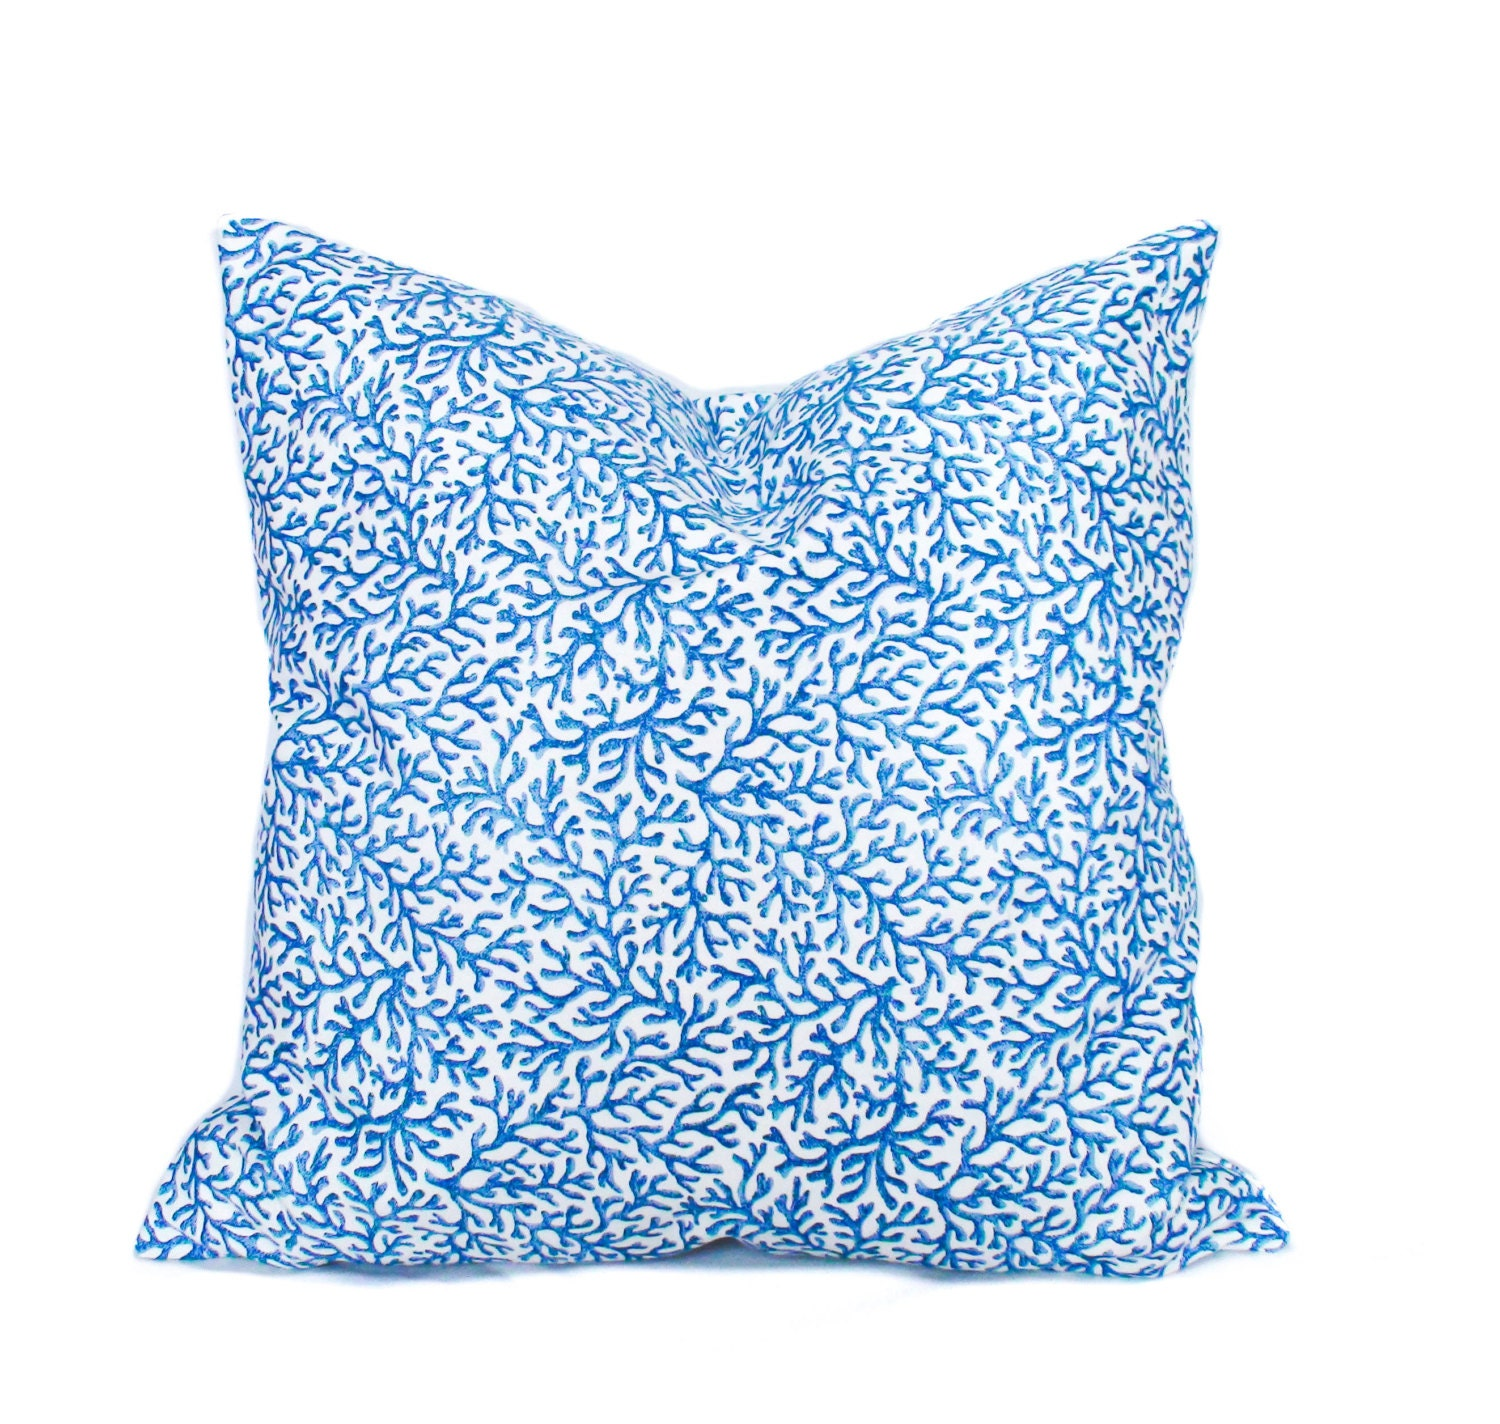 Decorative Pillows Blue : Blue throw pillows 18x18 Blue decorative pillows by PillowCorner